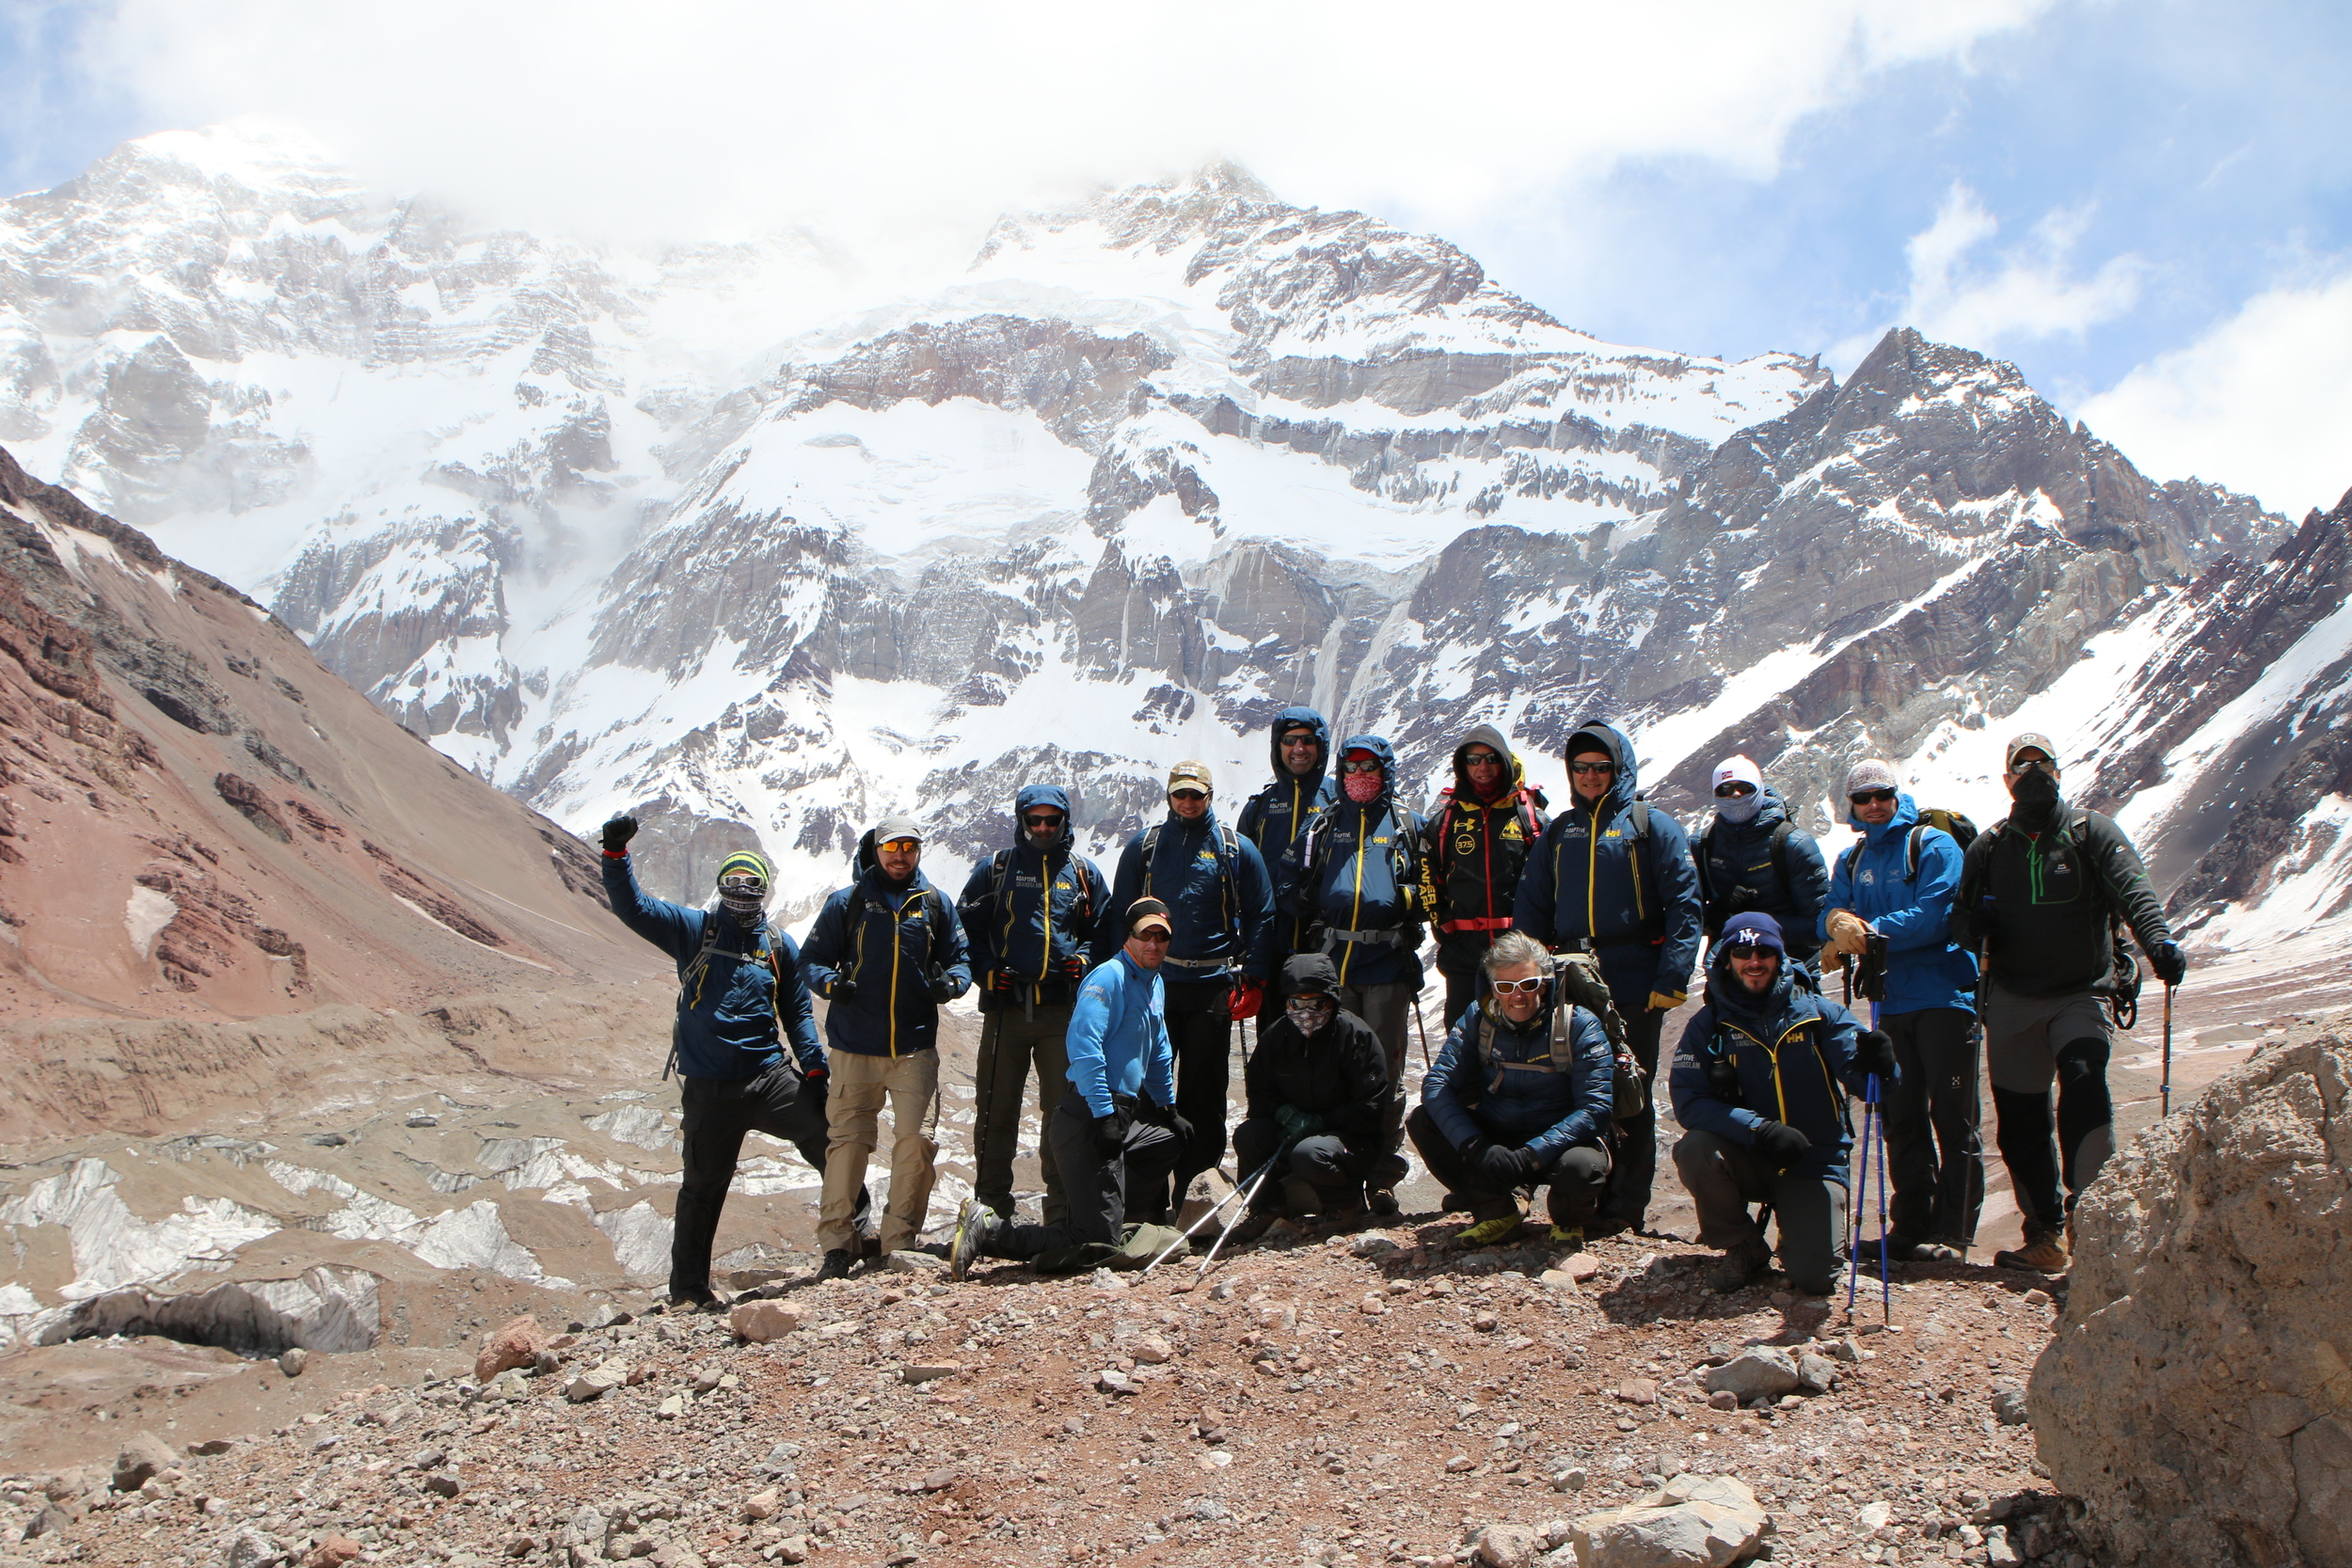 The team as they set off from Base Camp